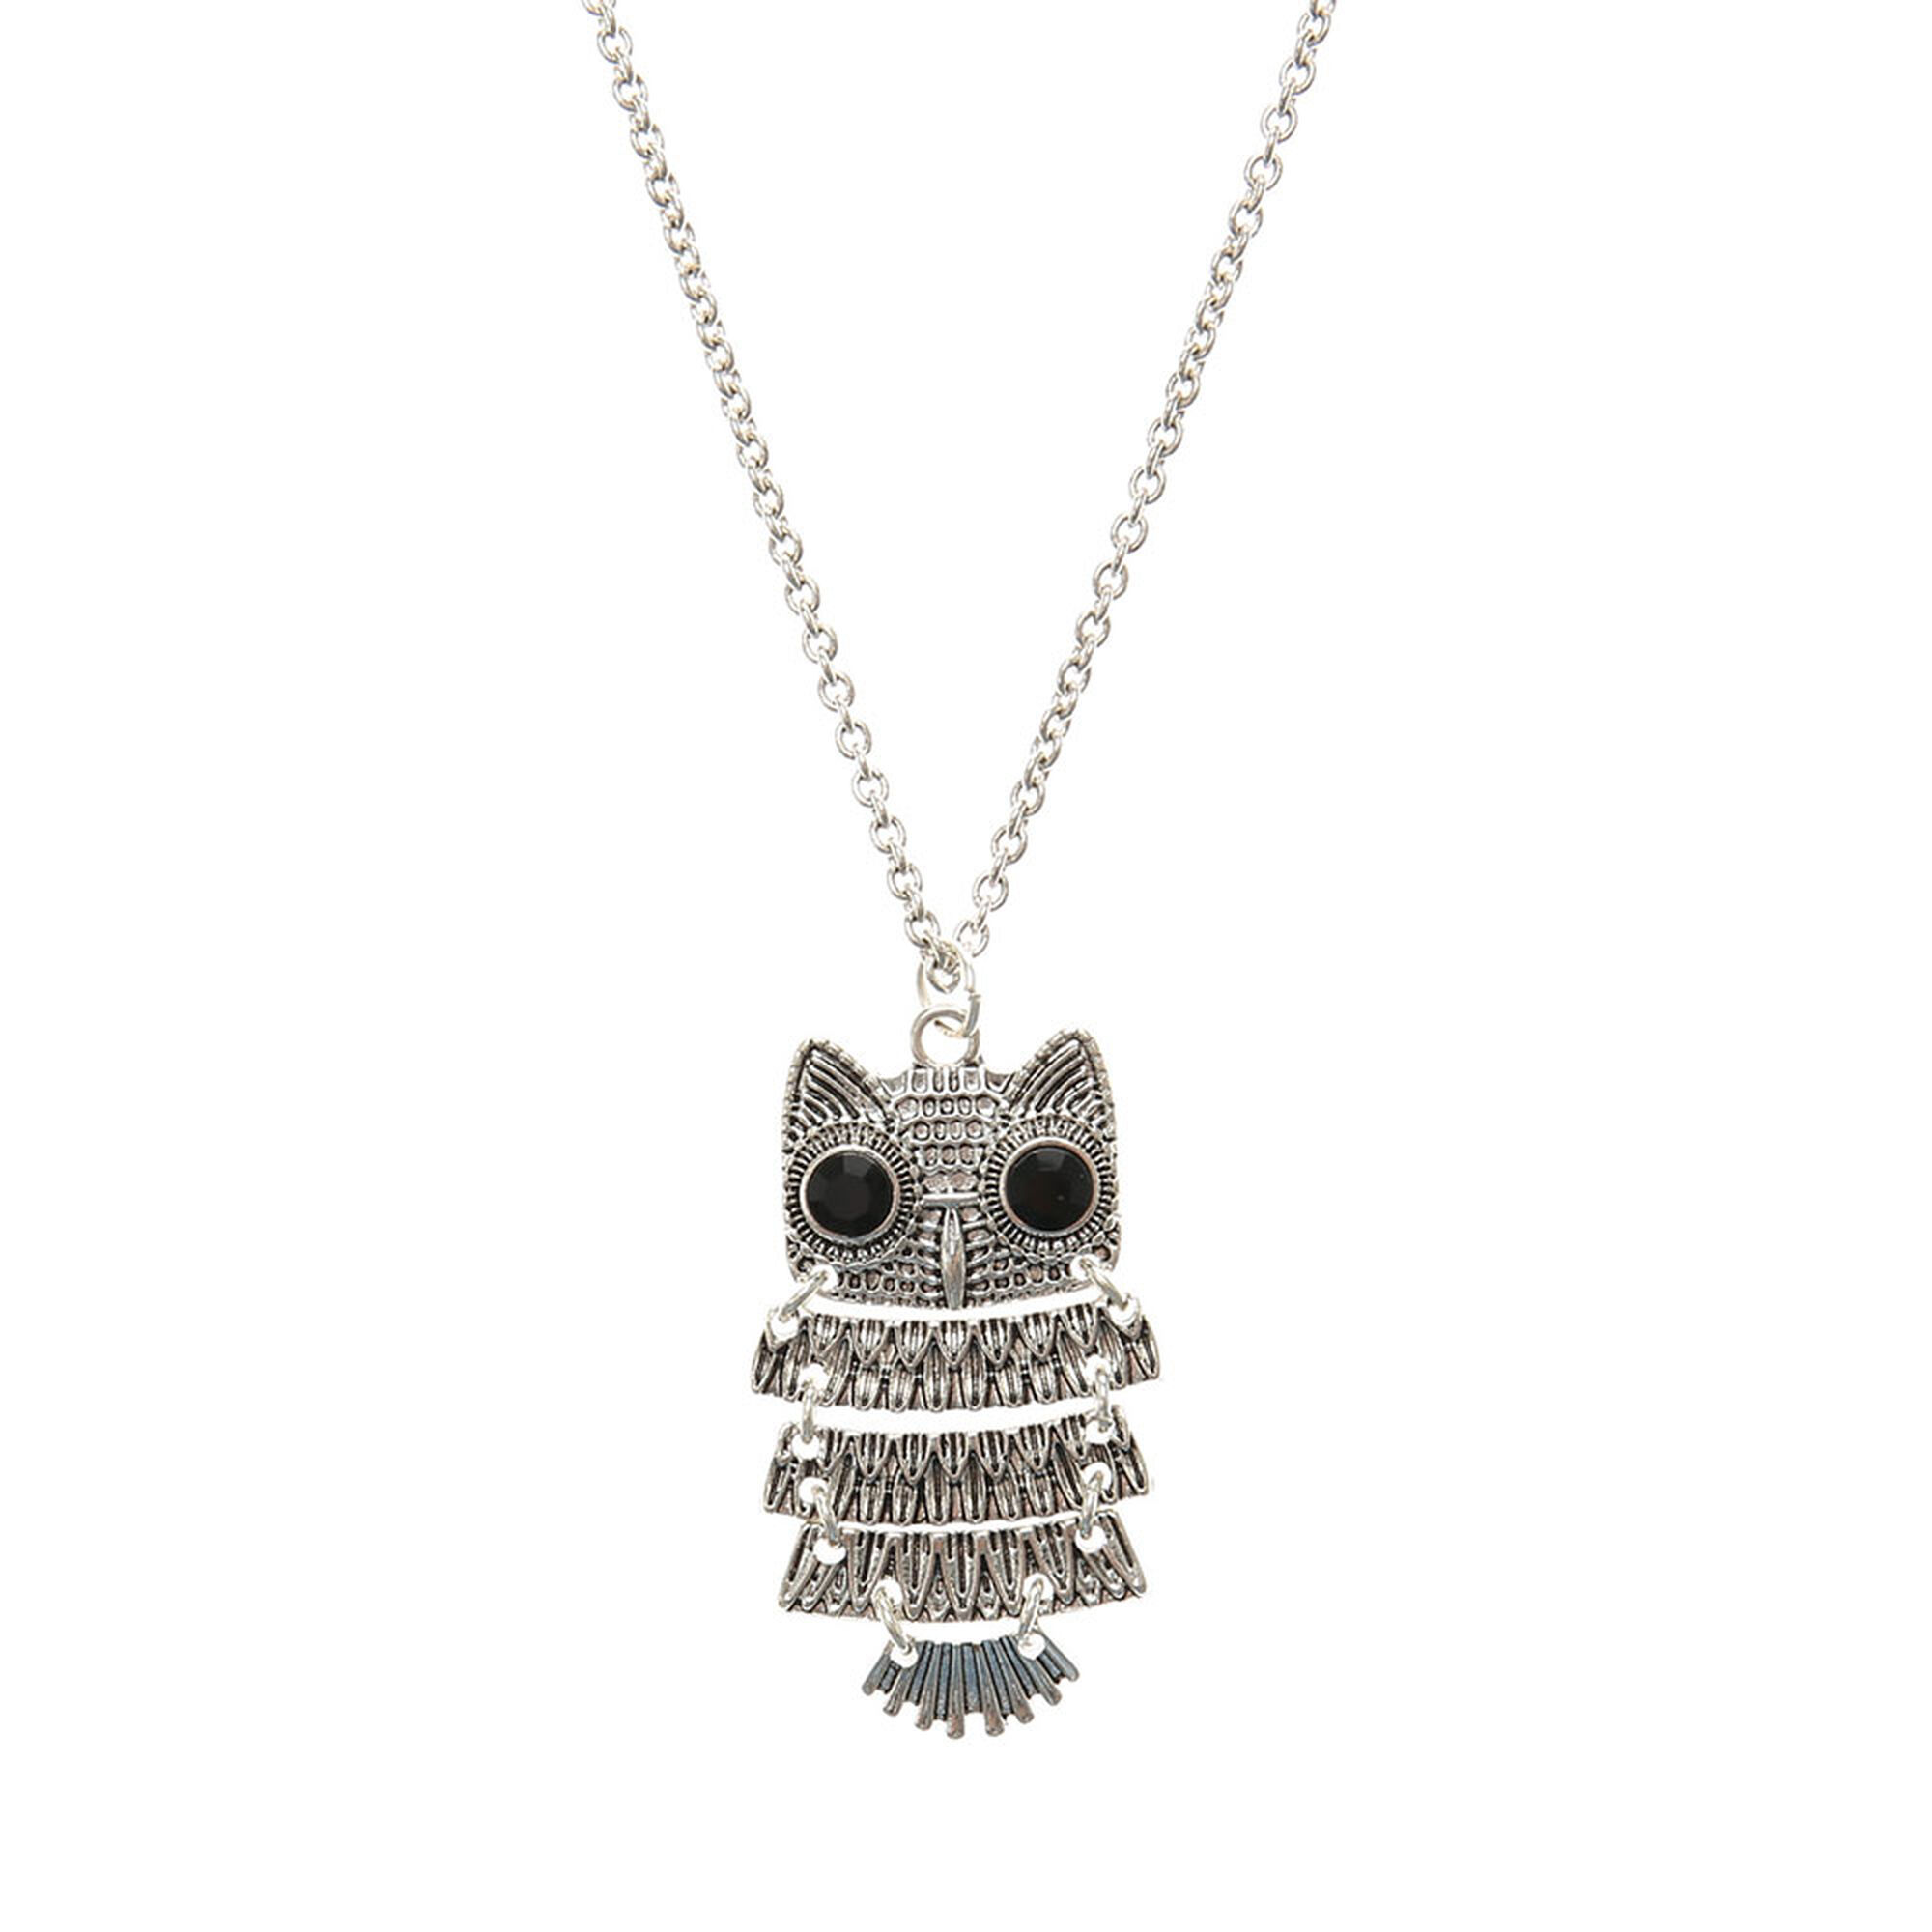 sterling ct jewelry s pendant designer owl diamond tw in w featured necklace silver macy t lyst macys metallic